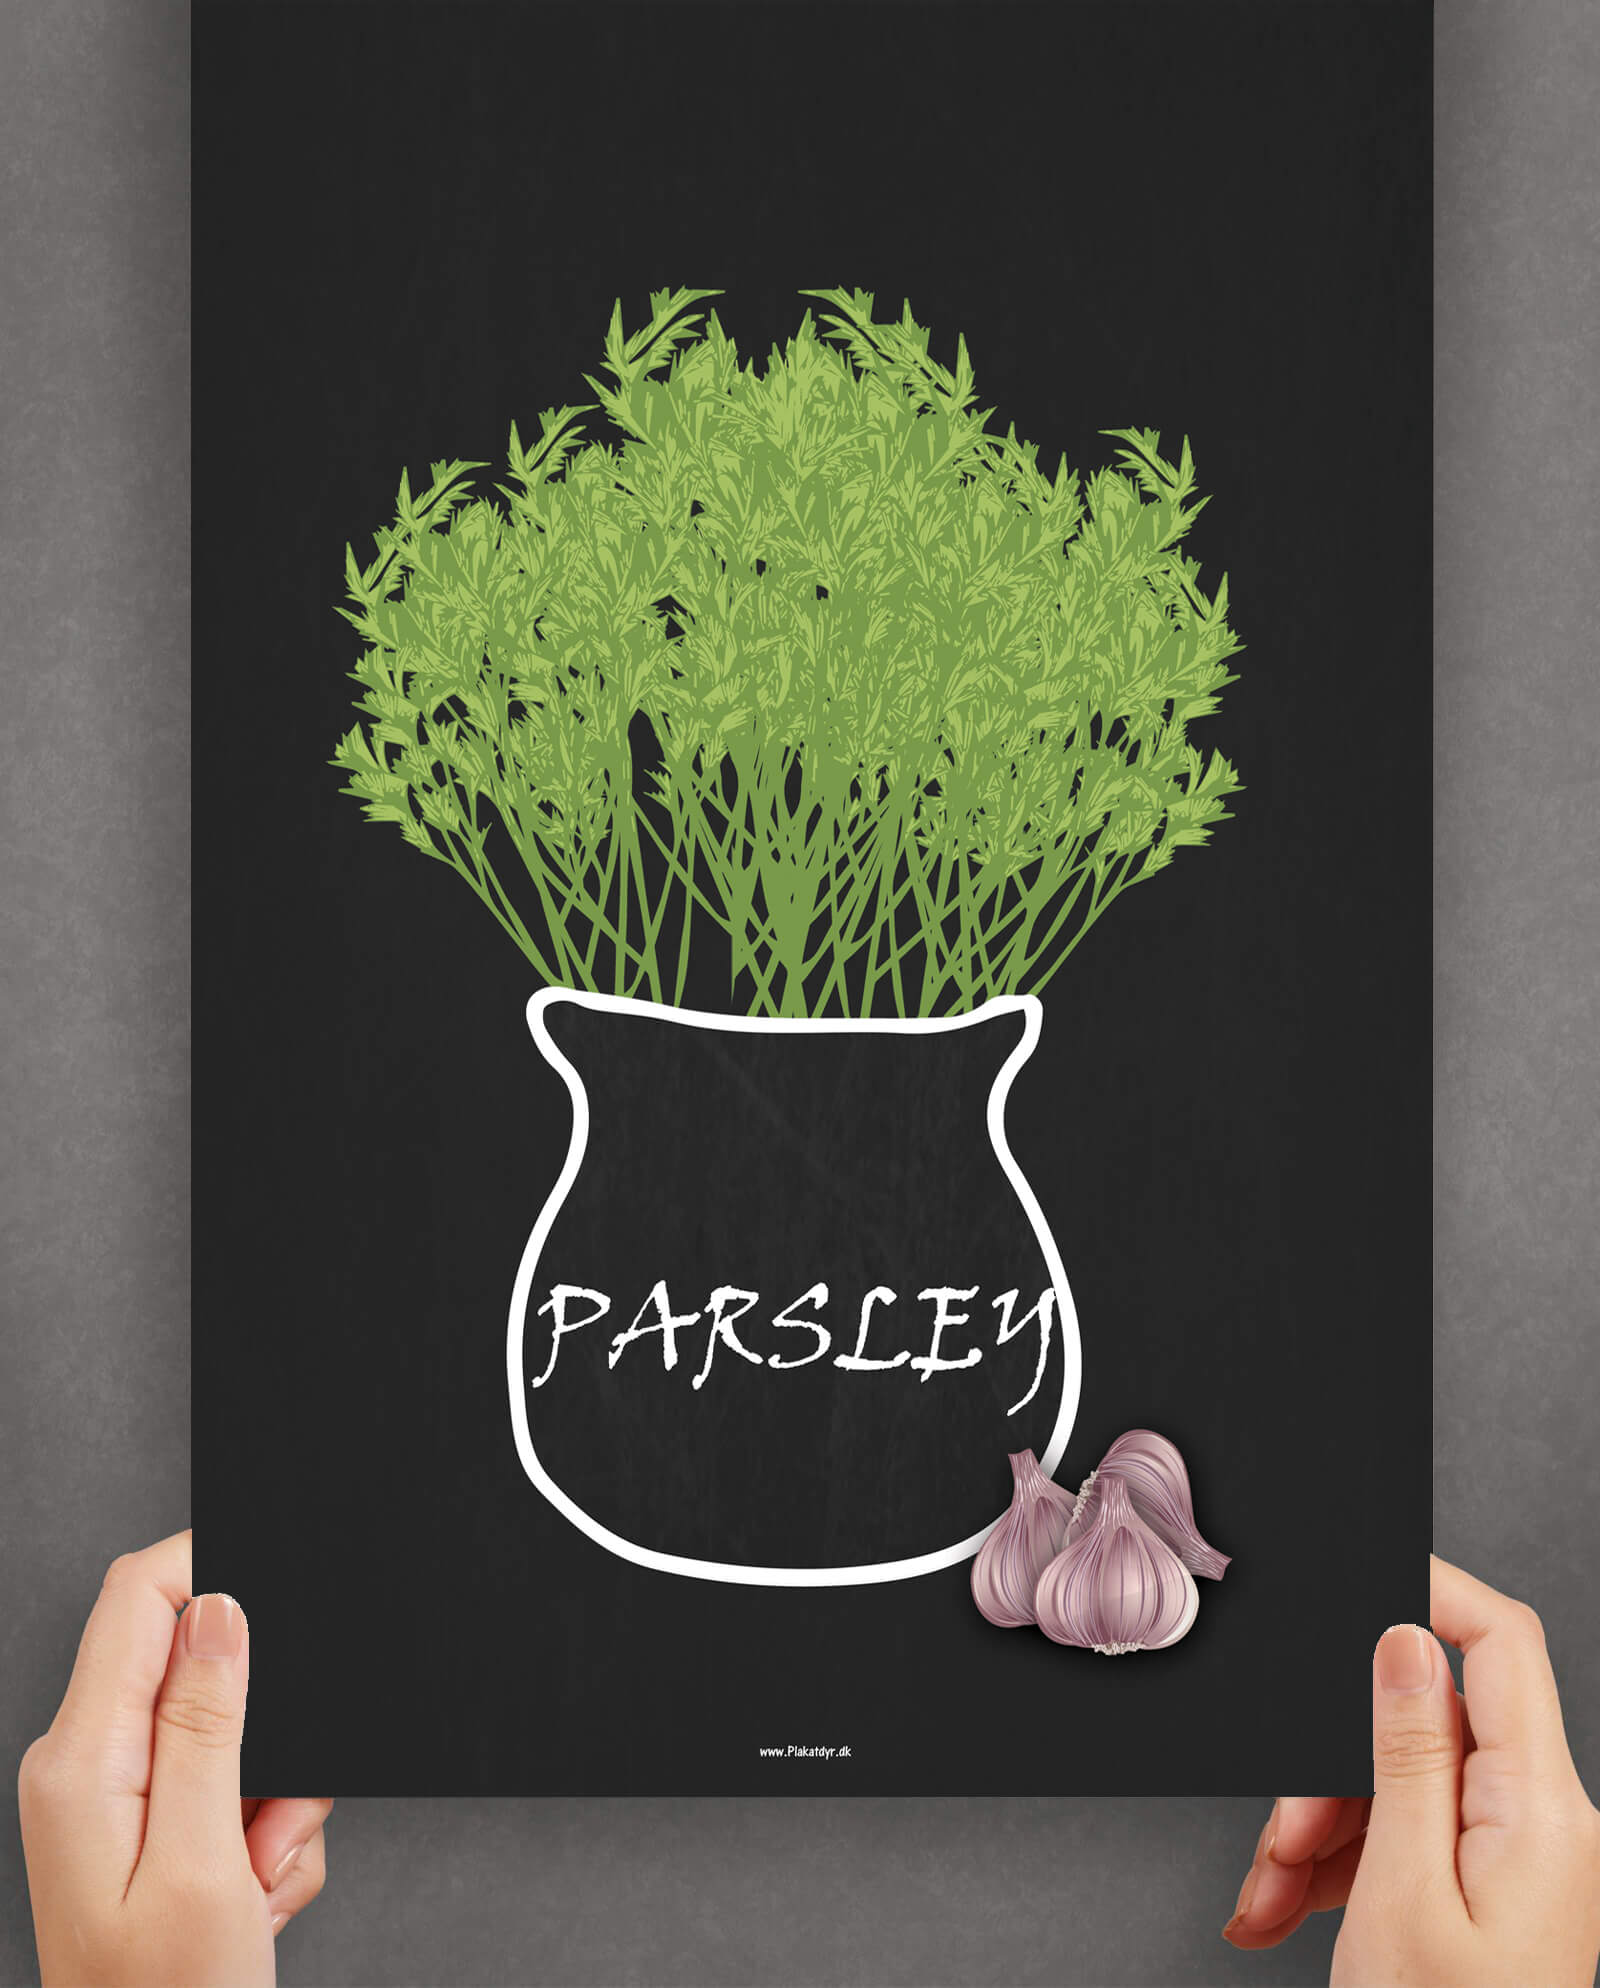 parsley-køkken